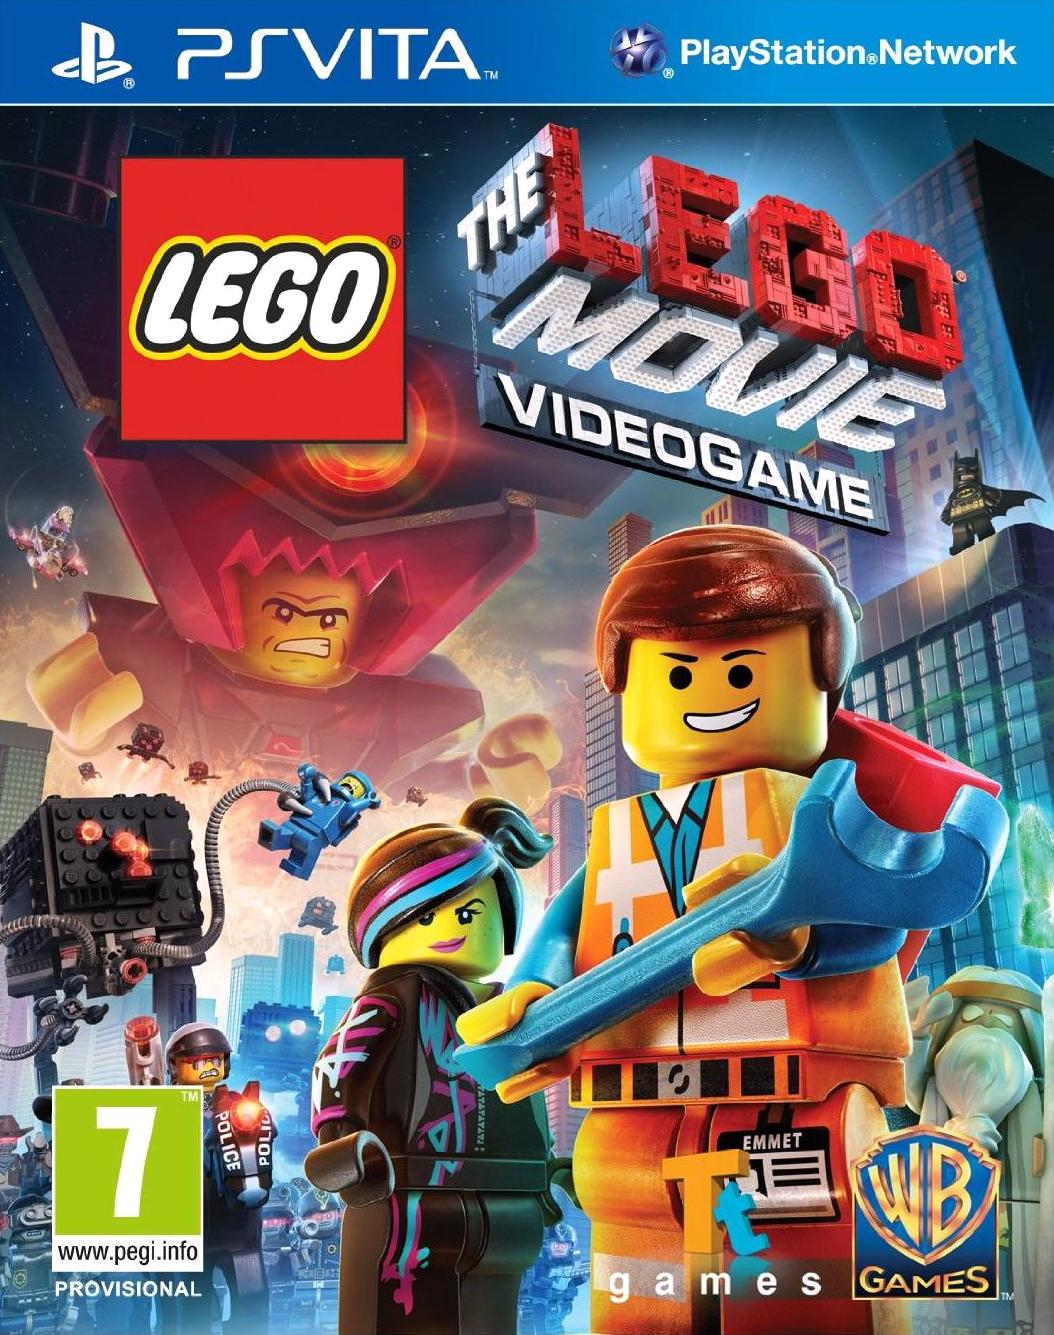 Lego Movie: The Videogame (Vita)